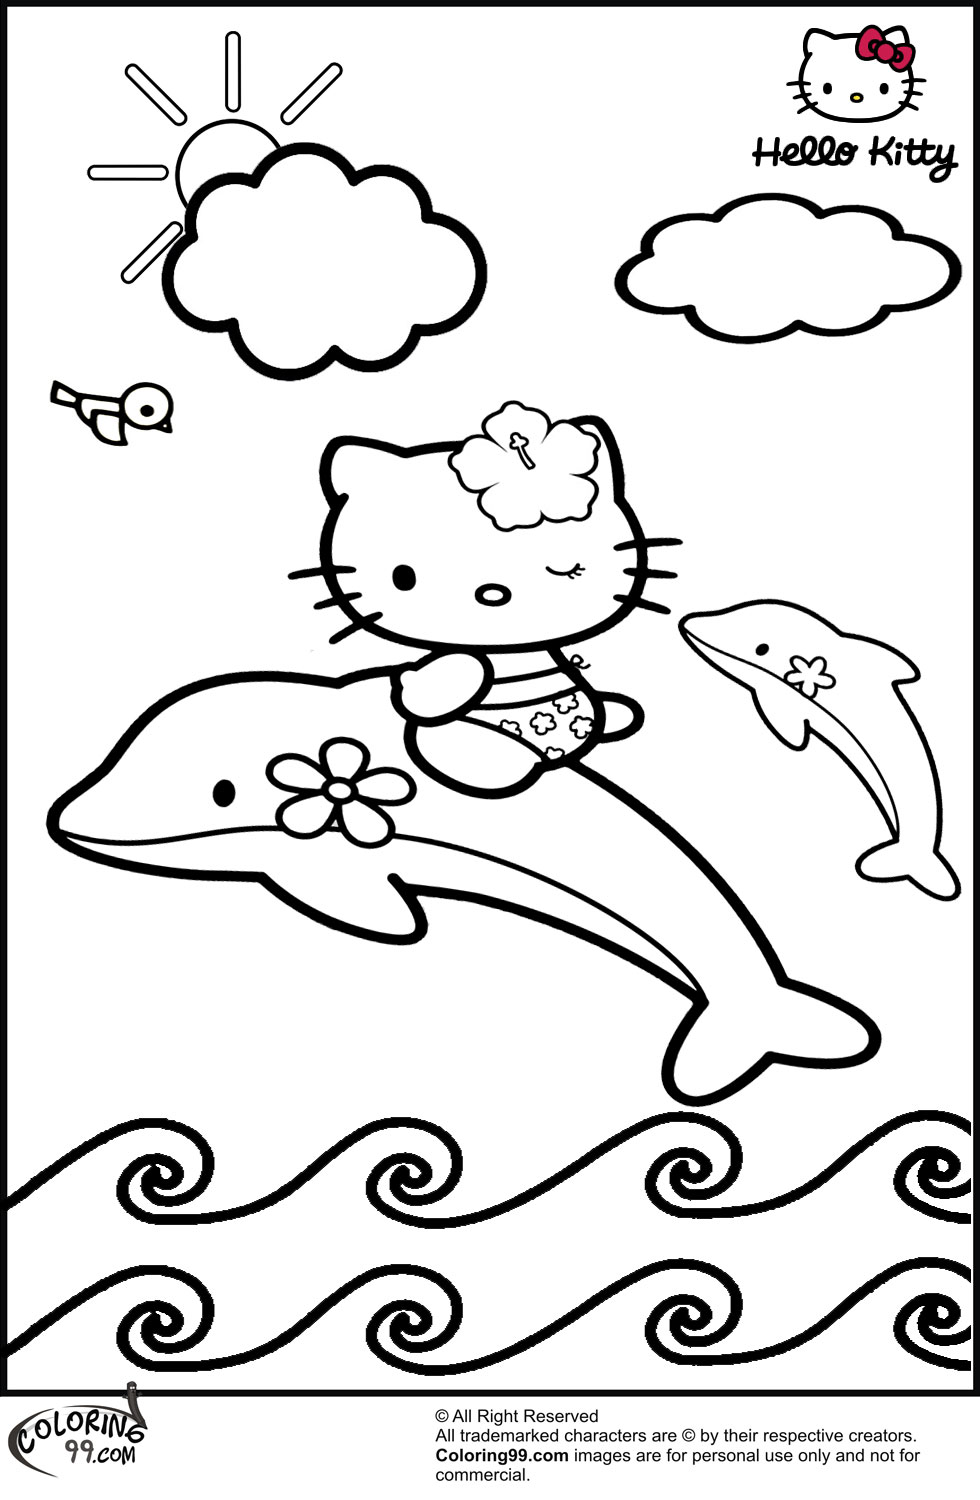 kitty hello coloring pages hello kitty halloween coloring pages minister coloring kitty hello pages coloring